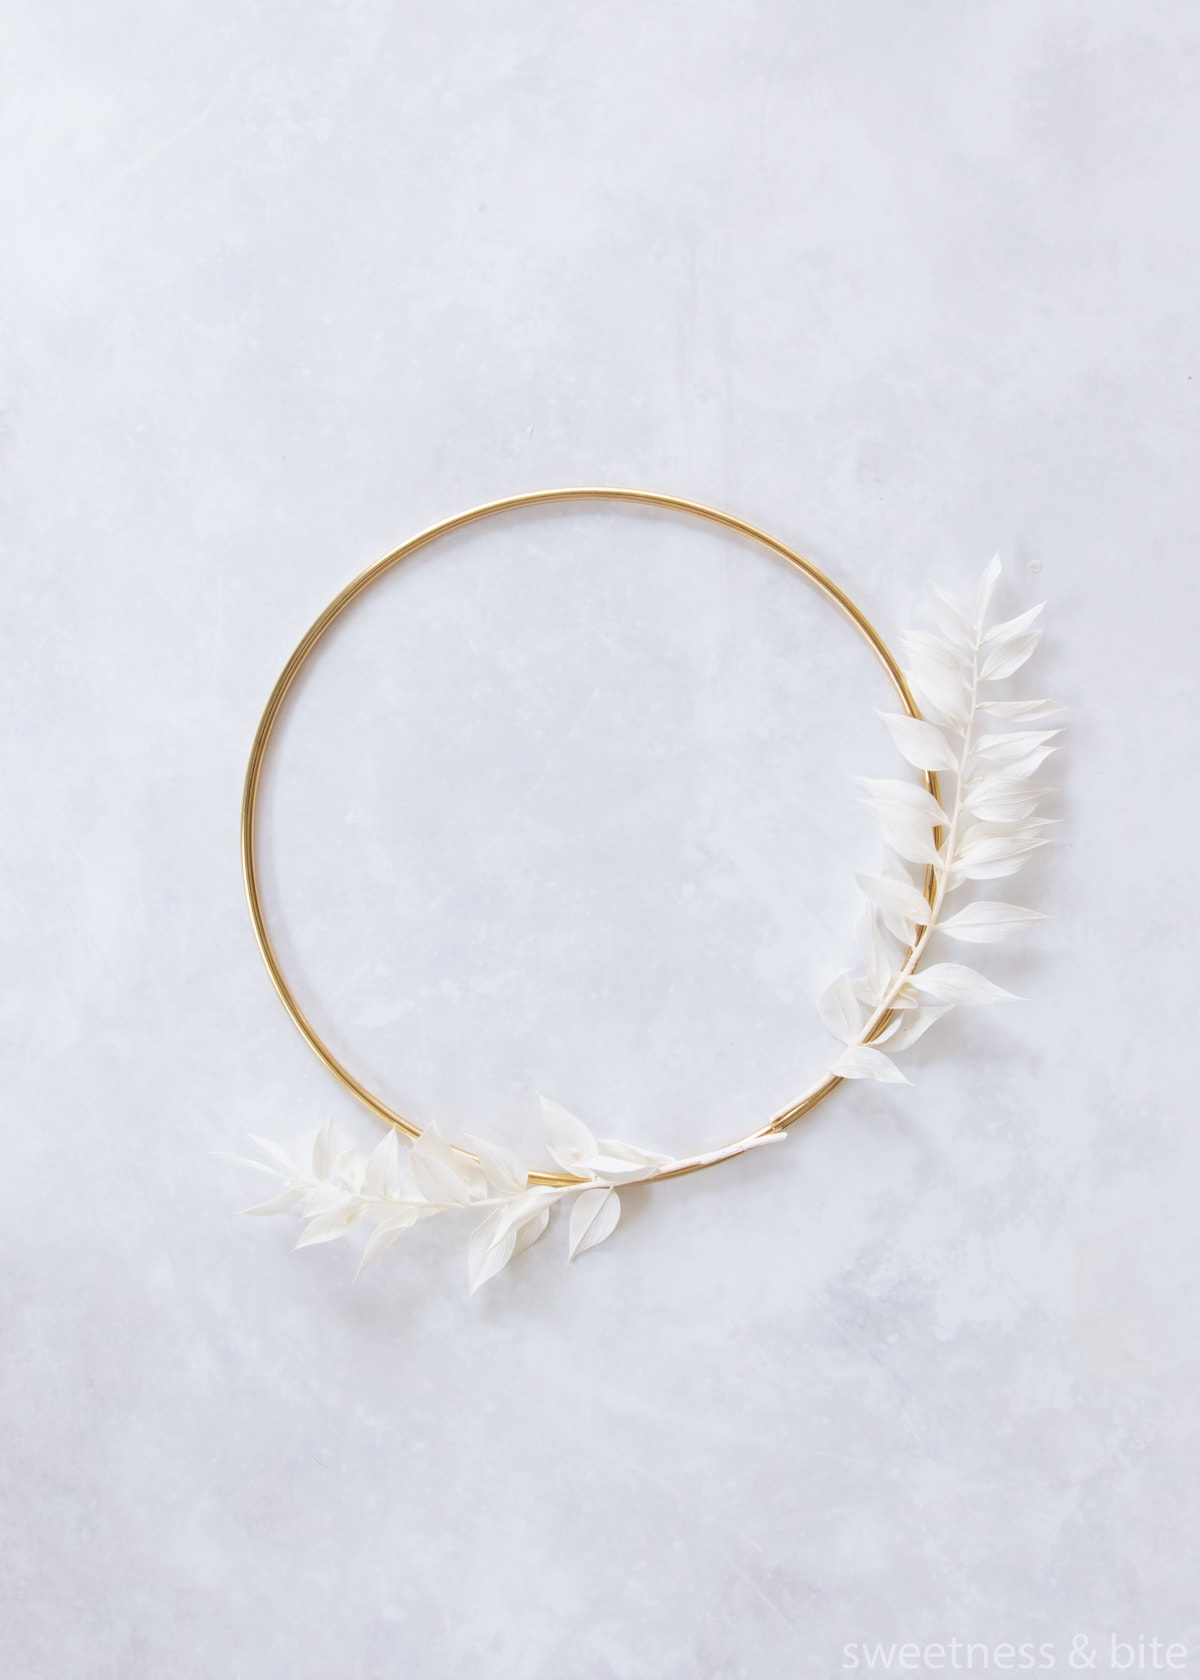 Two pieces of white ruscus tied to the hoop with clear thread.